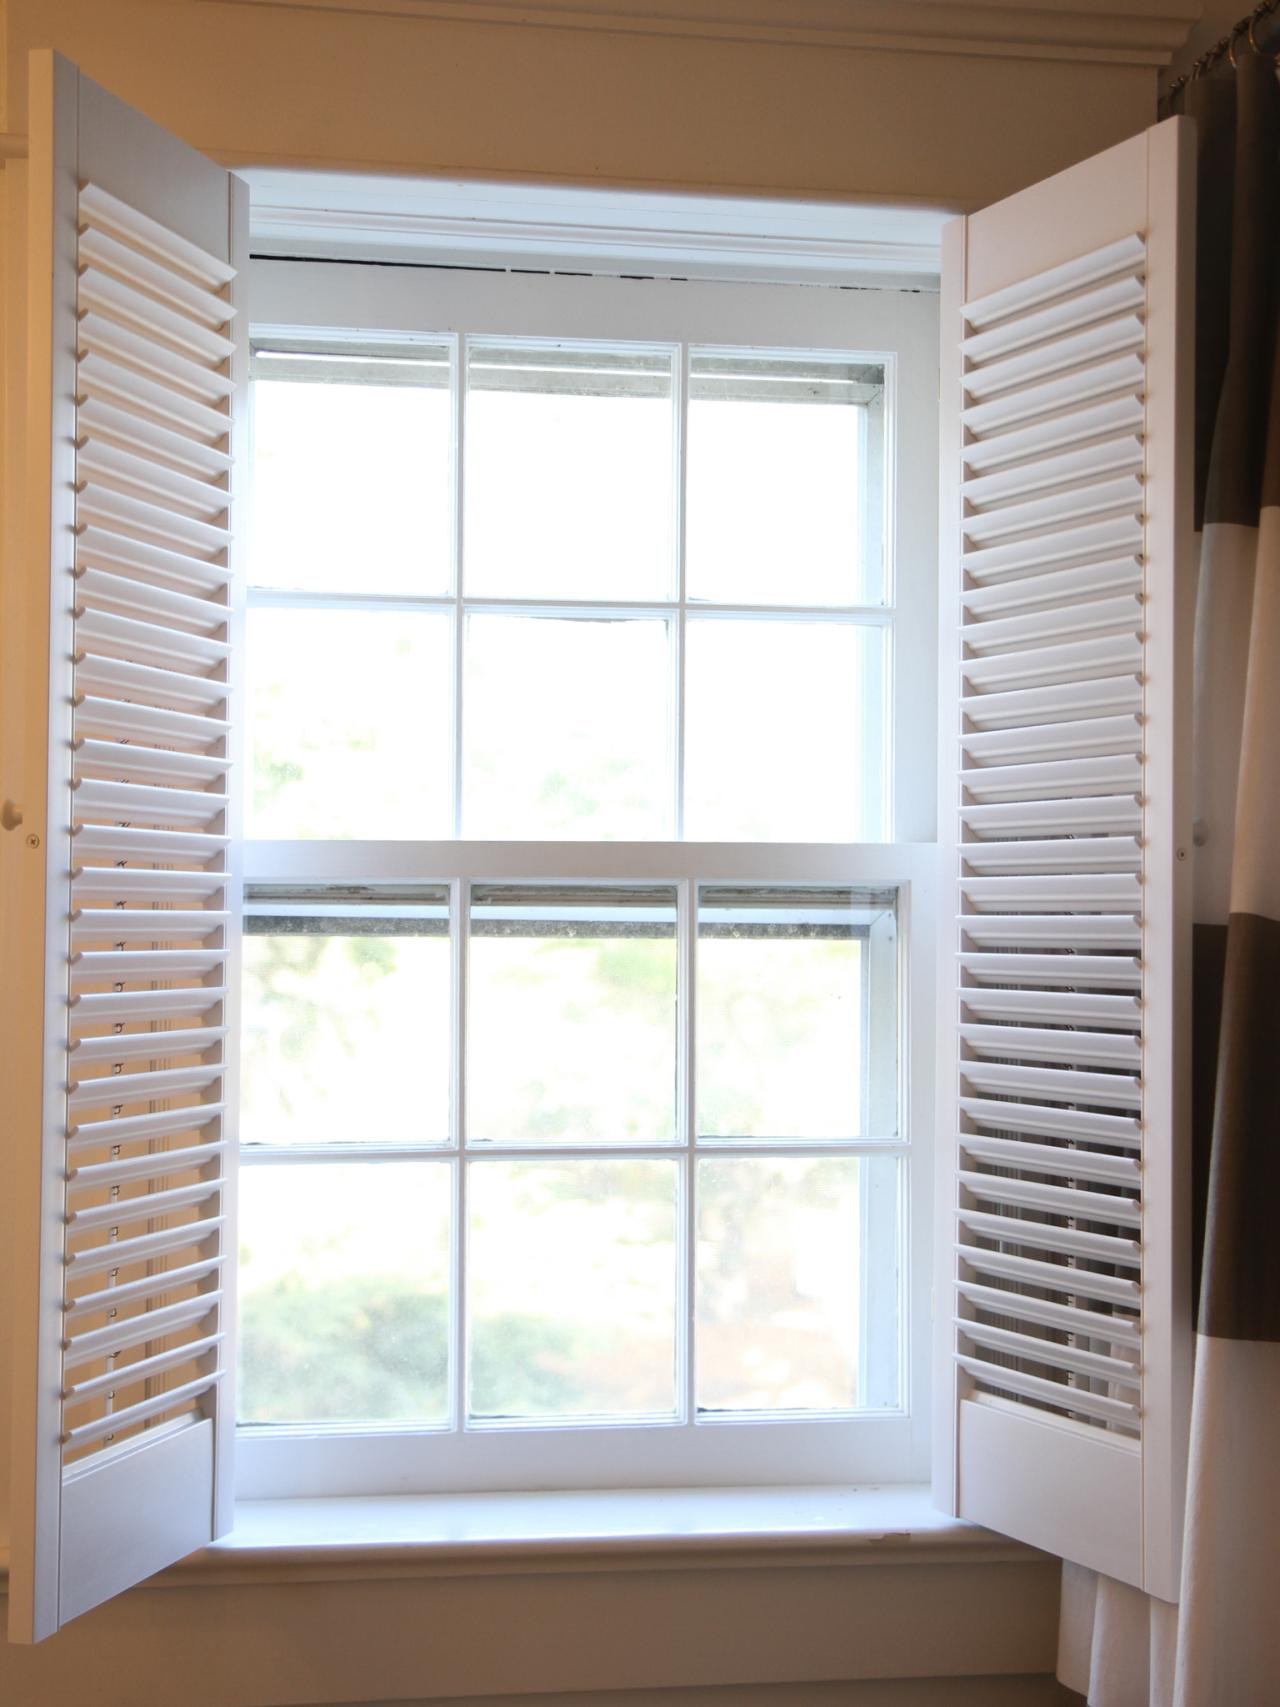 Homeowners Guide to Choosing the Best Window Shutters | Plantation Shutters